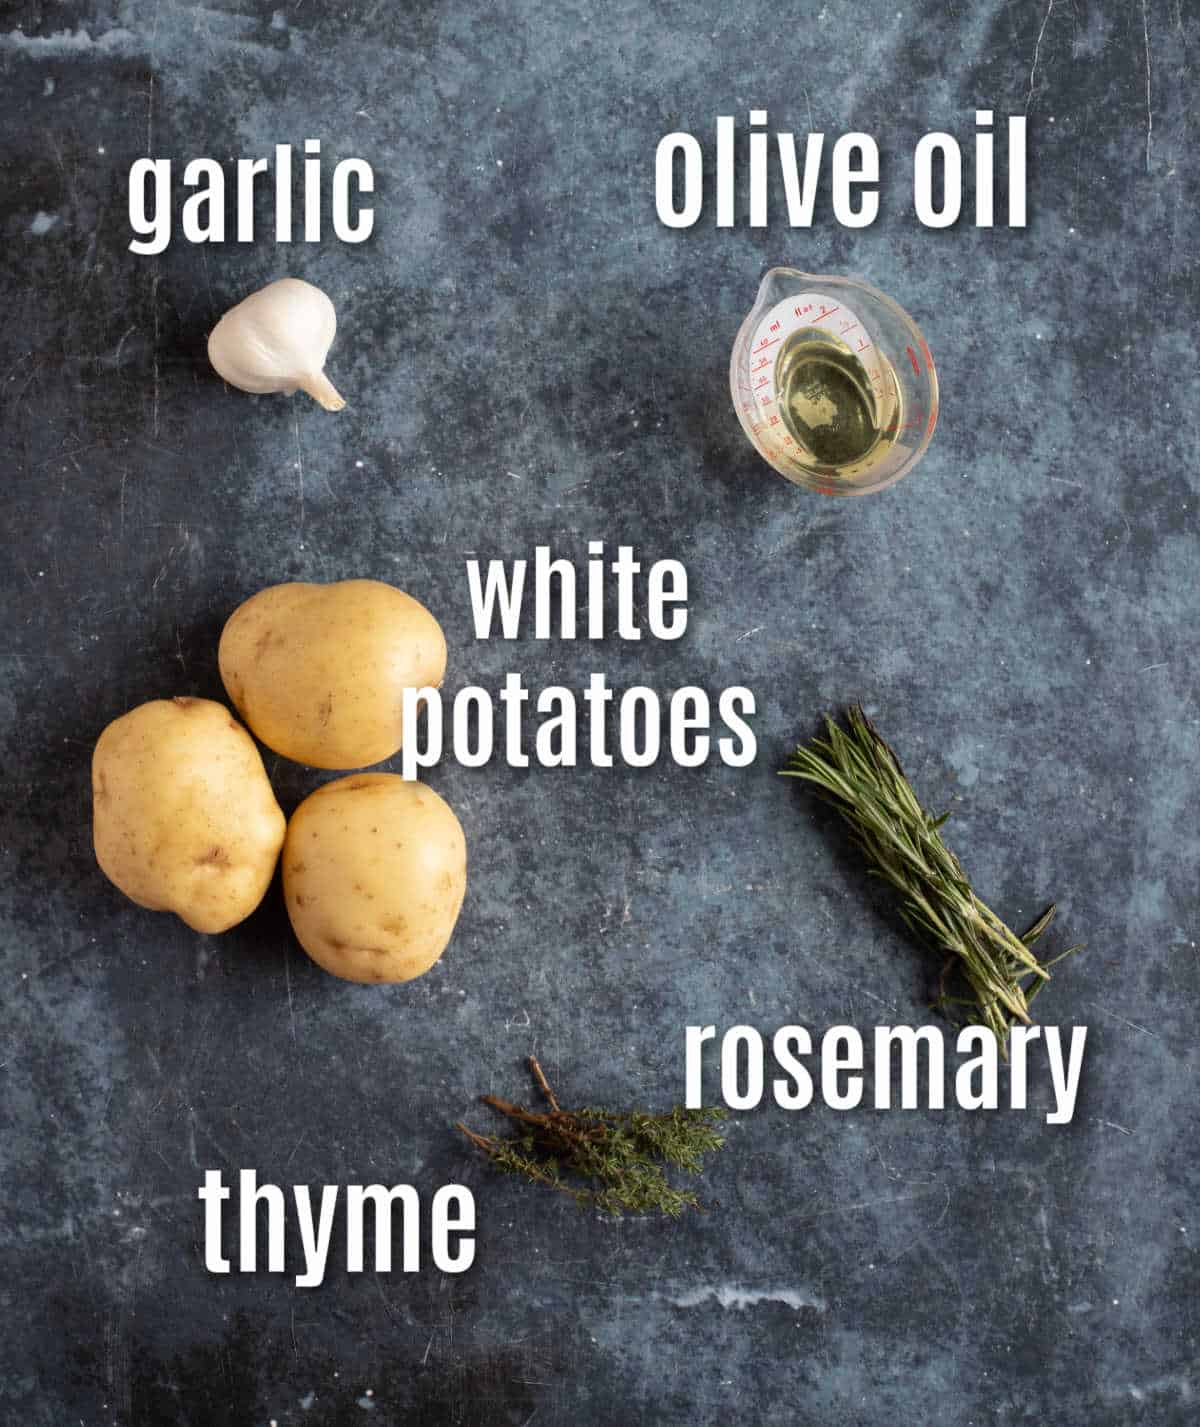 Ingredients needed to make Parmentier potatoes from scratch at home.